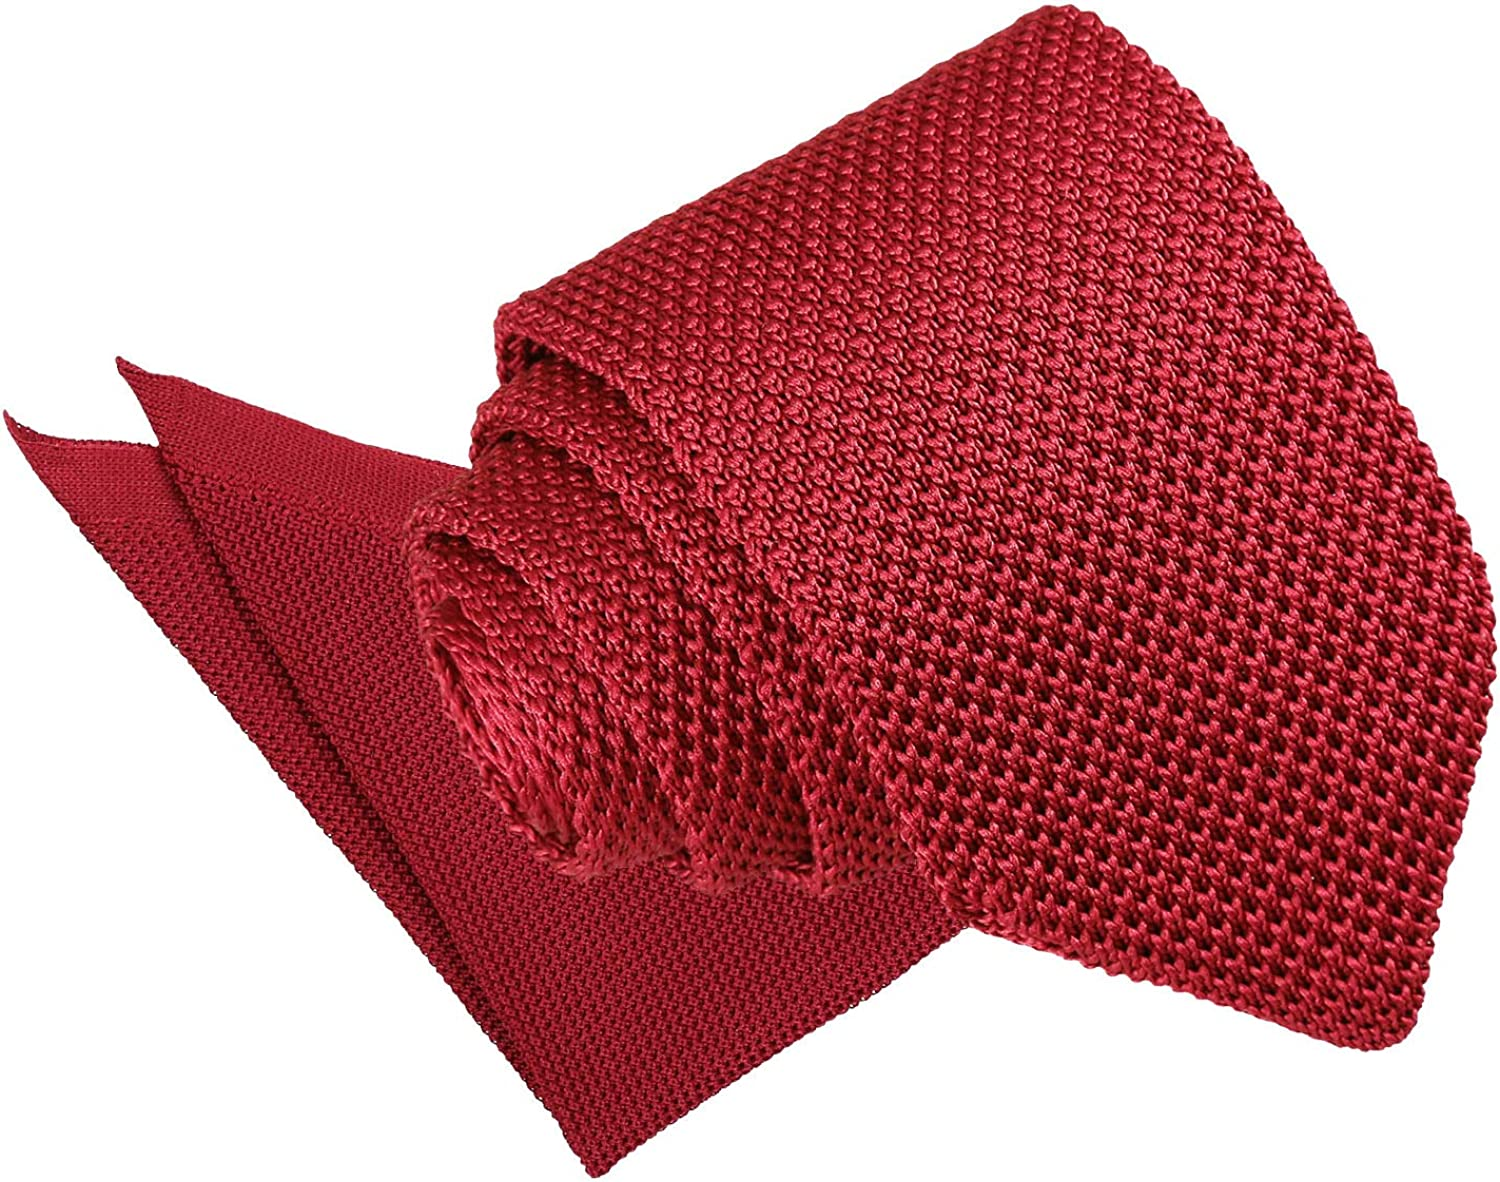 DQT Knit Knitted Plain Casual Modern Slim Neck Tie /& Pocket Square Set for Men